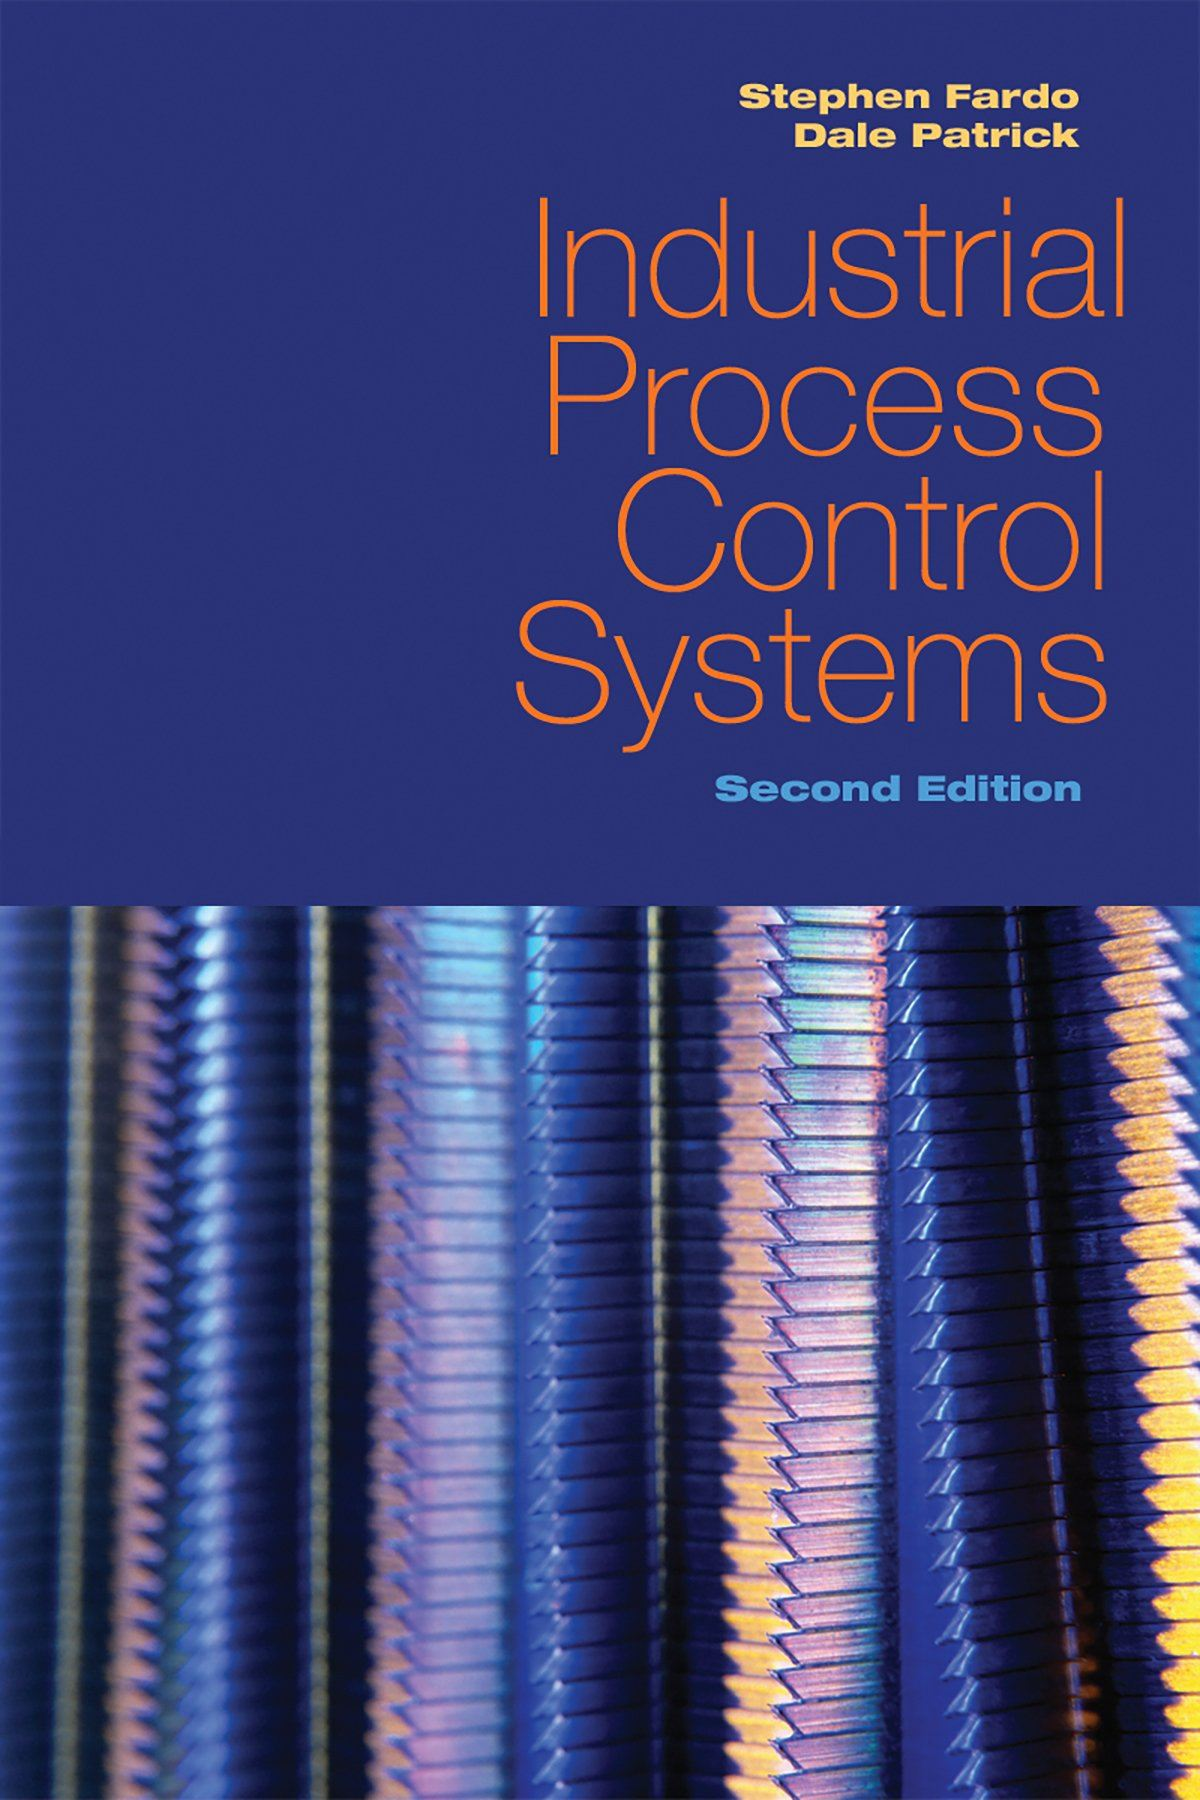 Industrial Process Control Systems 2nd Edition Aee Programs Electrical Software Eep